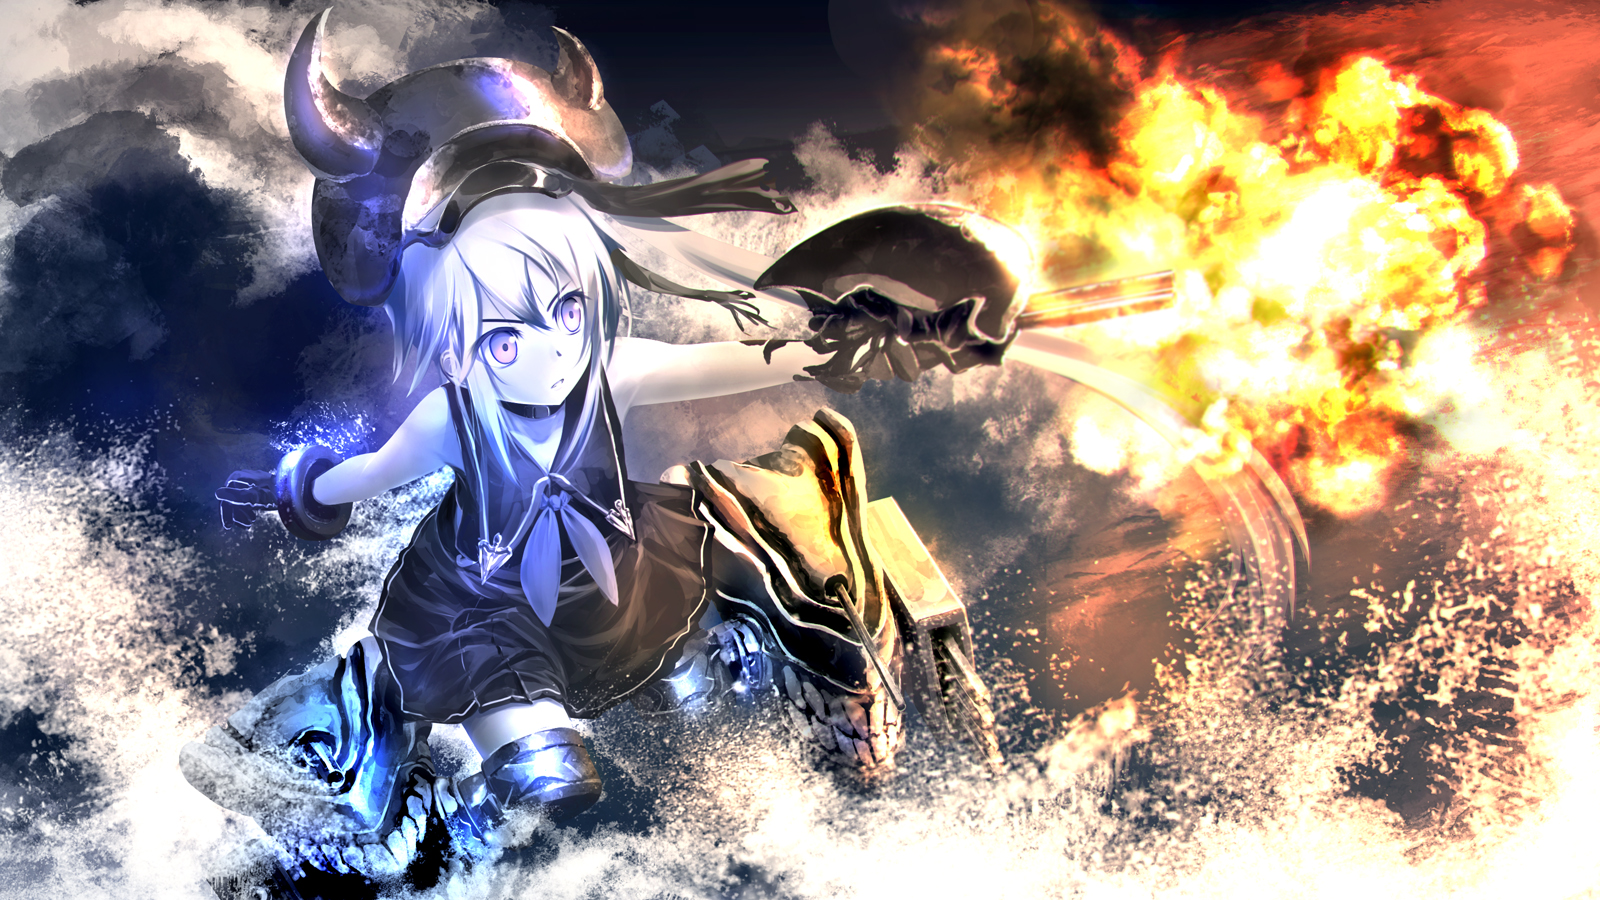 Kantai Collection Wallpaper and Background Image ...